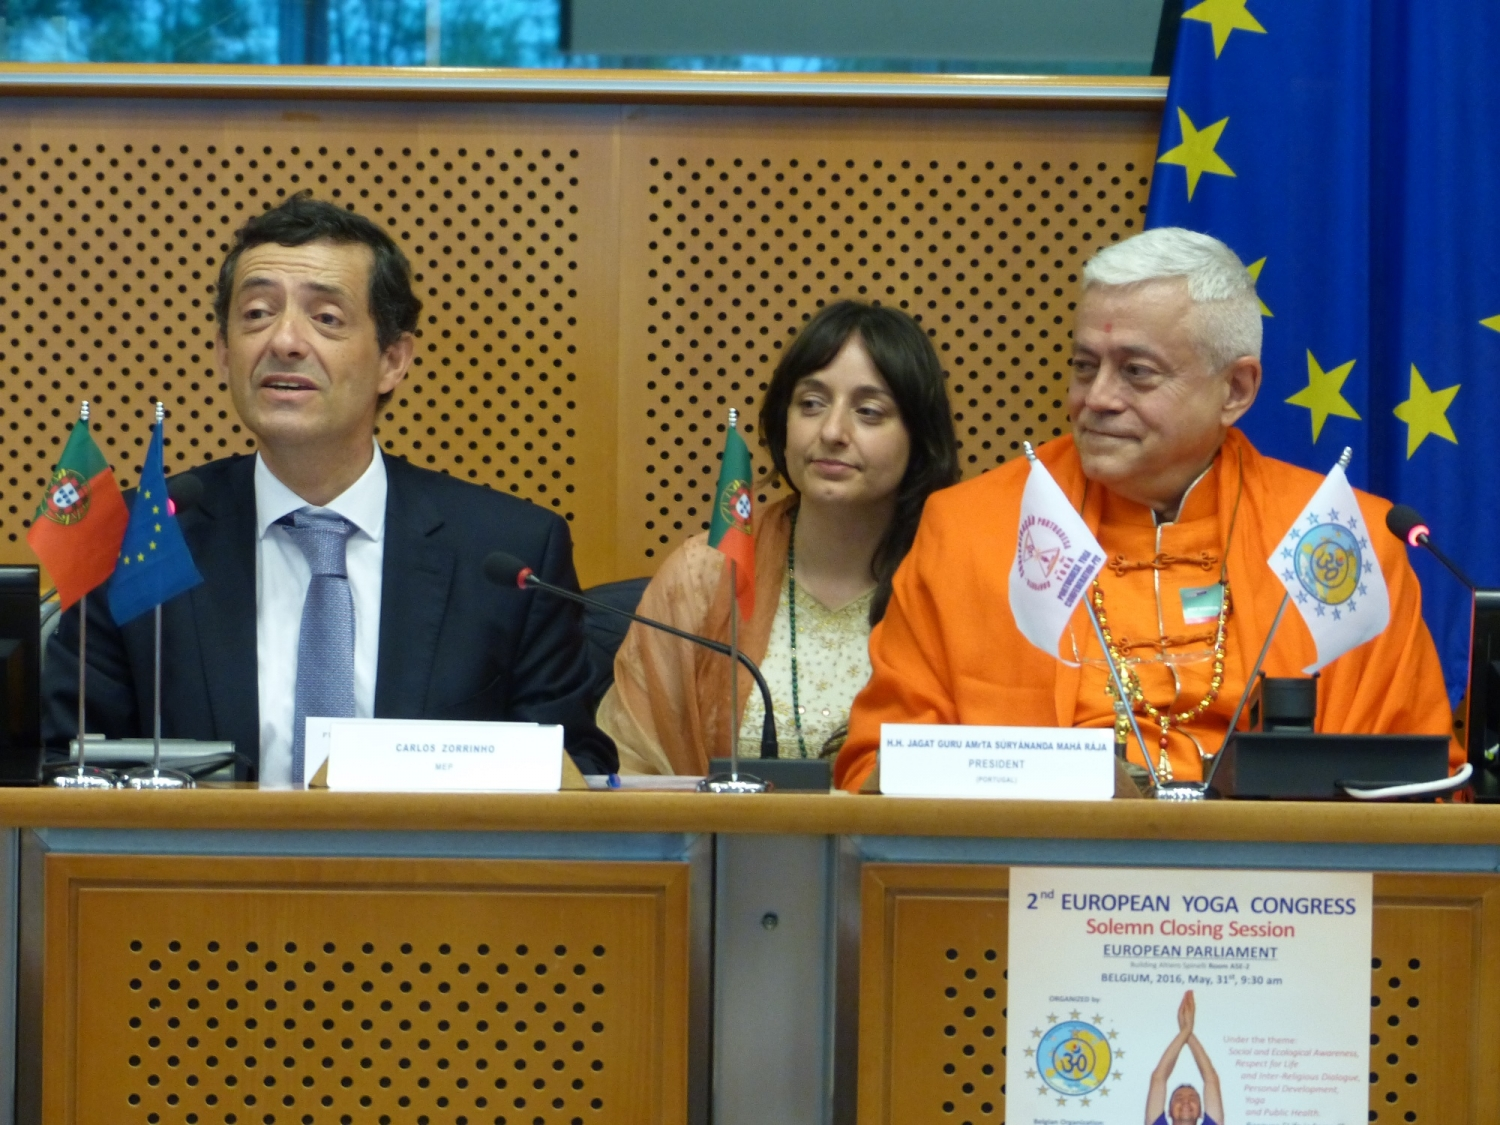 Solemn Closing Ceremony of the 2nd European Yoga Congress - 2016 - European Parliament in Brussels (...)